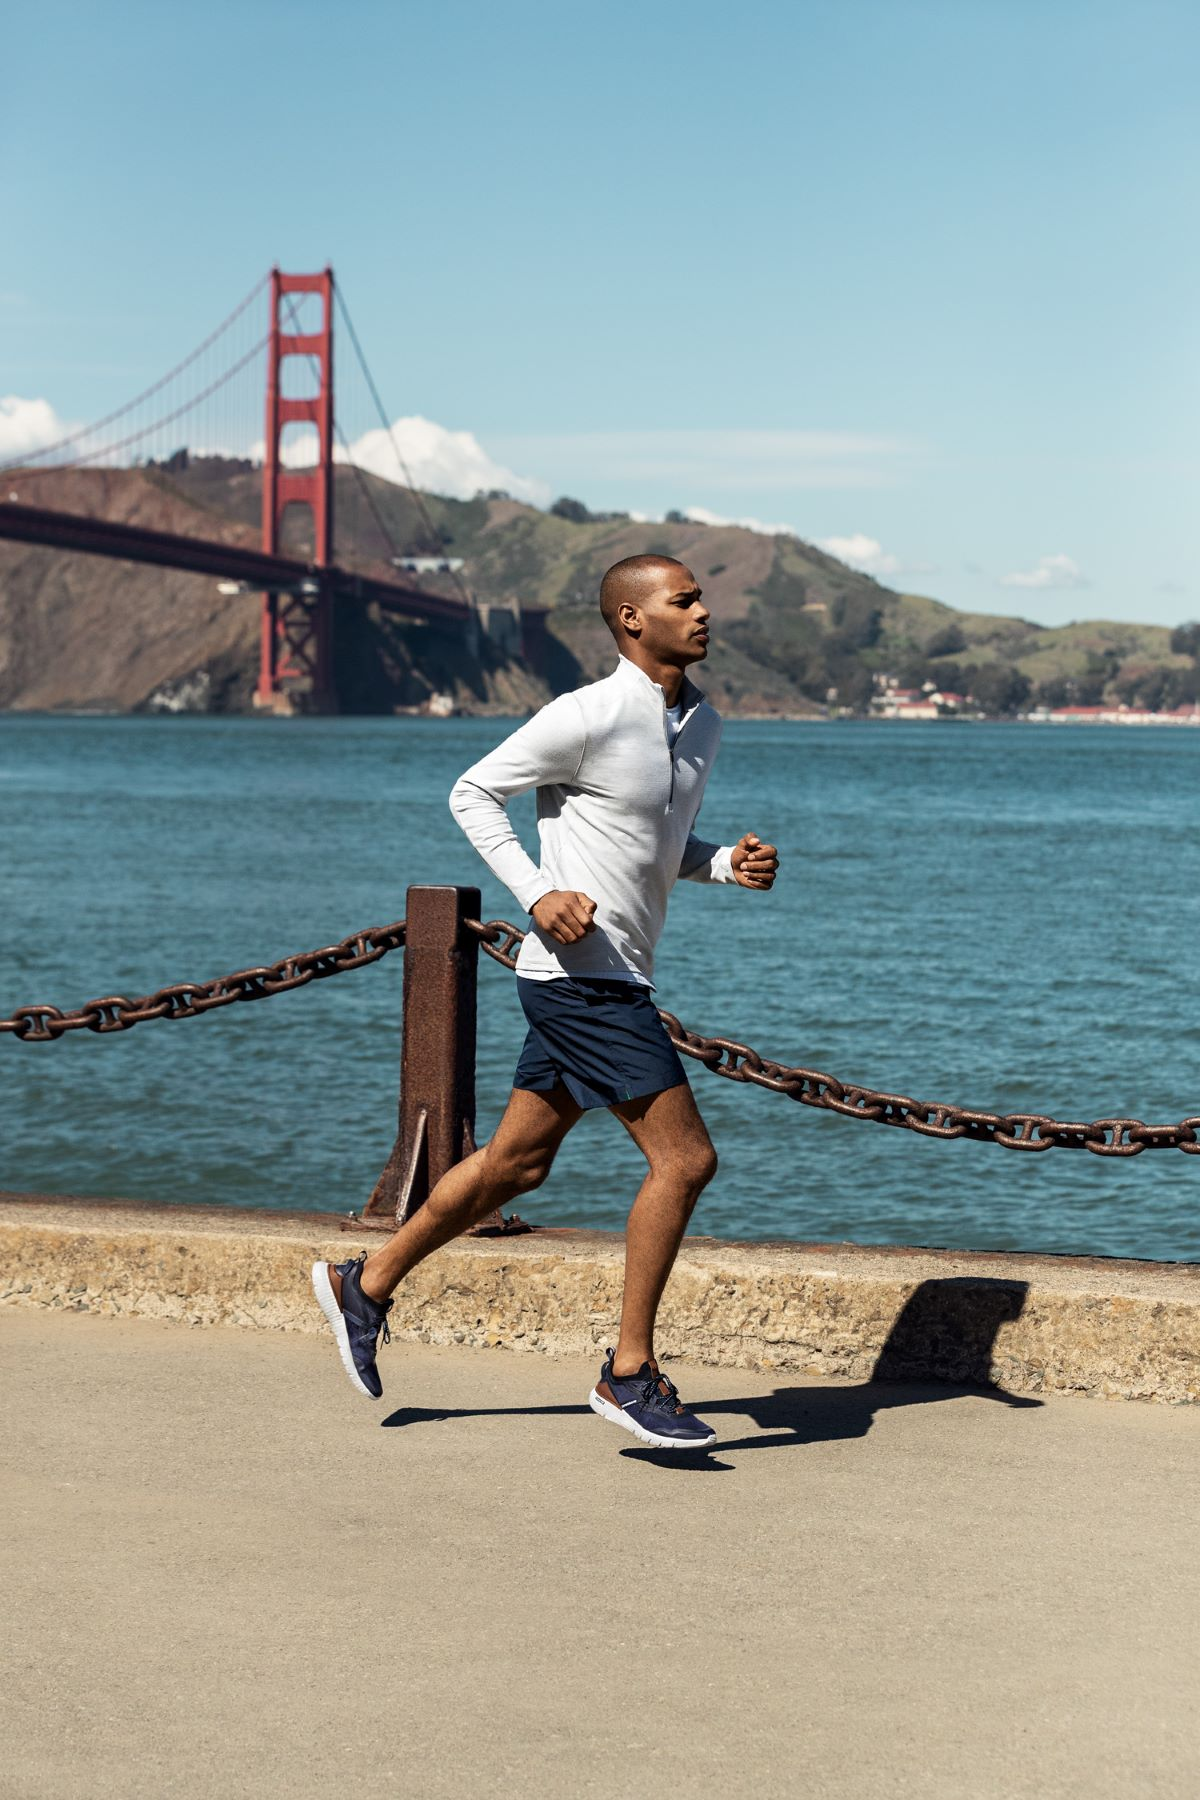 Cole Haan launched the Zerøgrand Outpace and Overtake performance running footwear line, with the versatility modern shoppers are seeking.